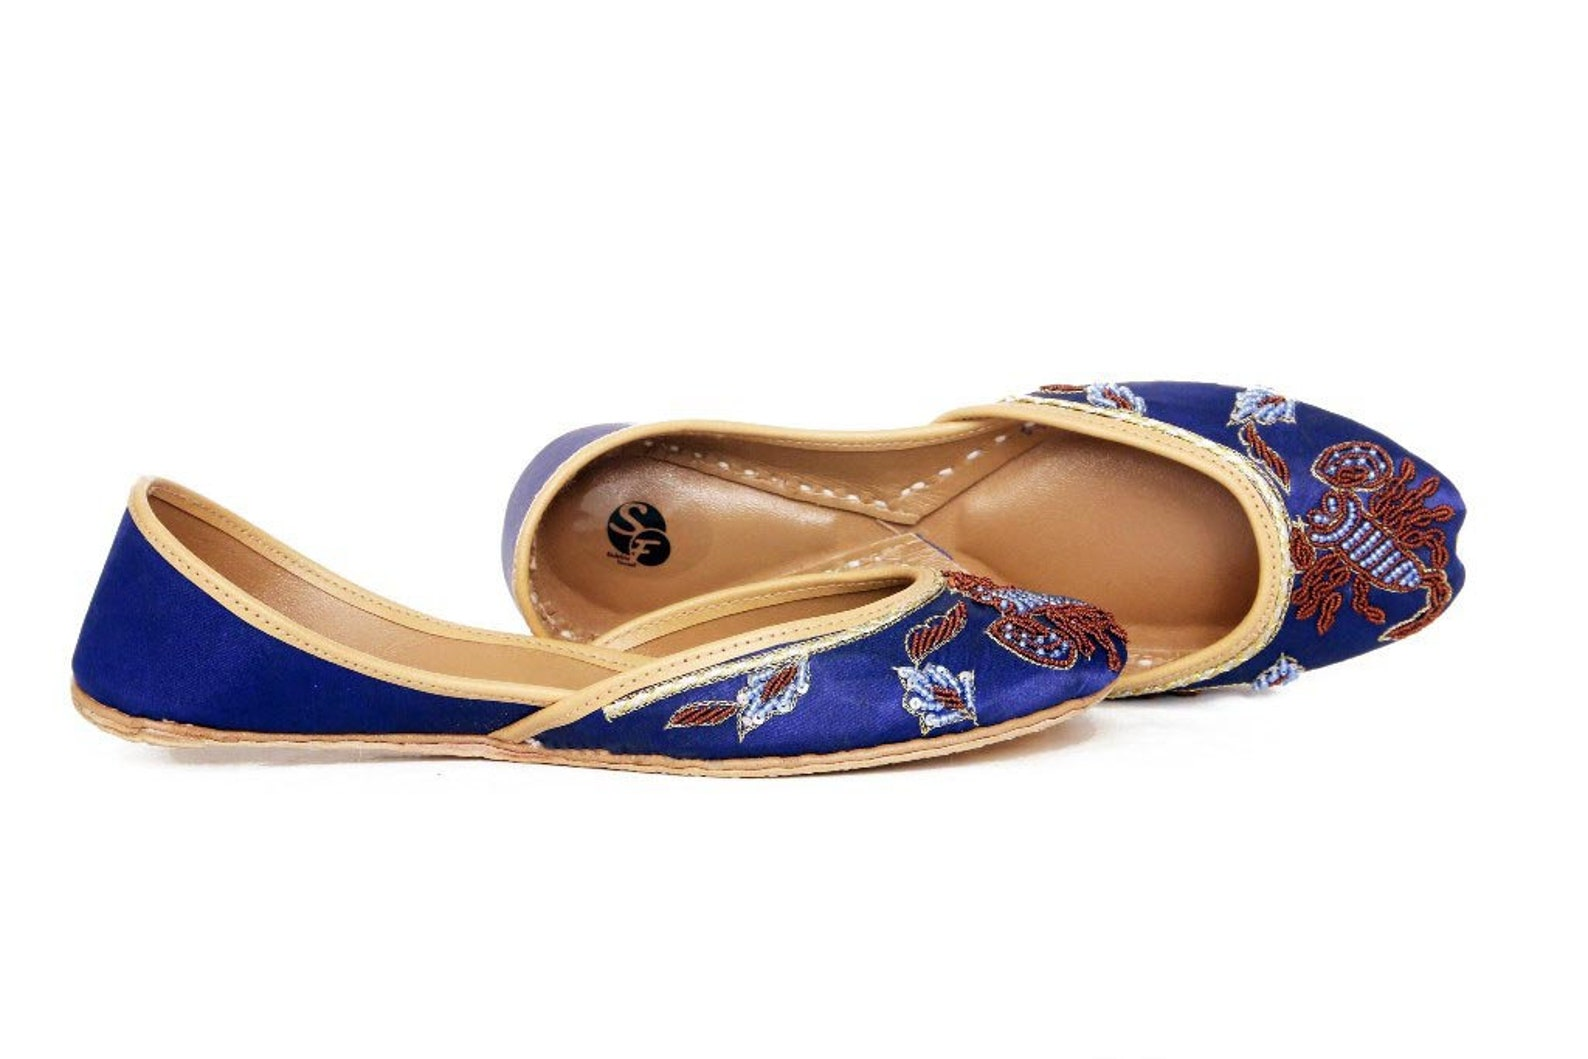 blue embellished ballet flat shoes blue juti blue khussa blue mojari indian blue mojari